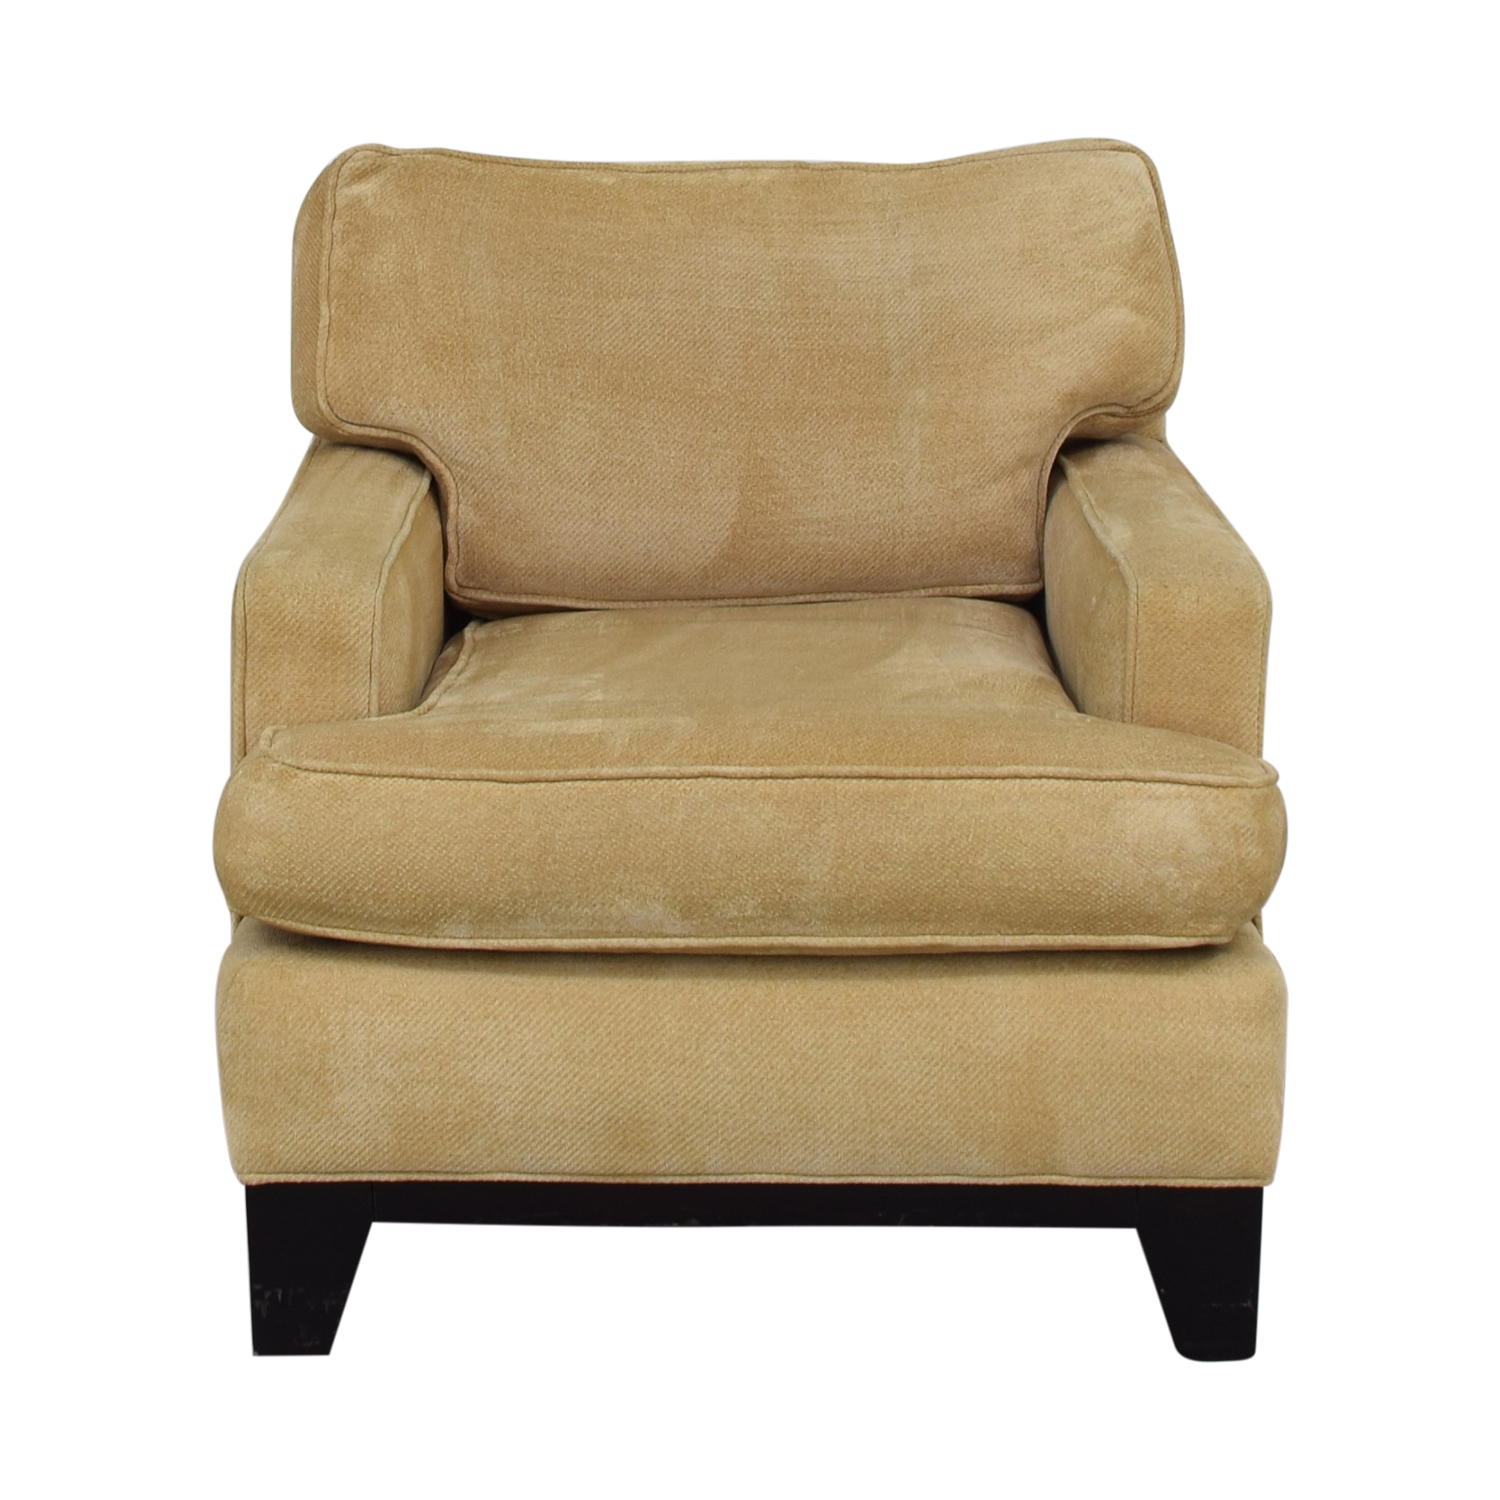 Williams Sonoma Beige Accent Chair / Accent Chairs